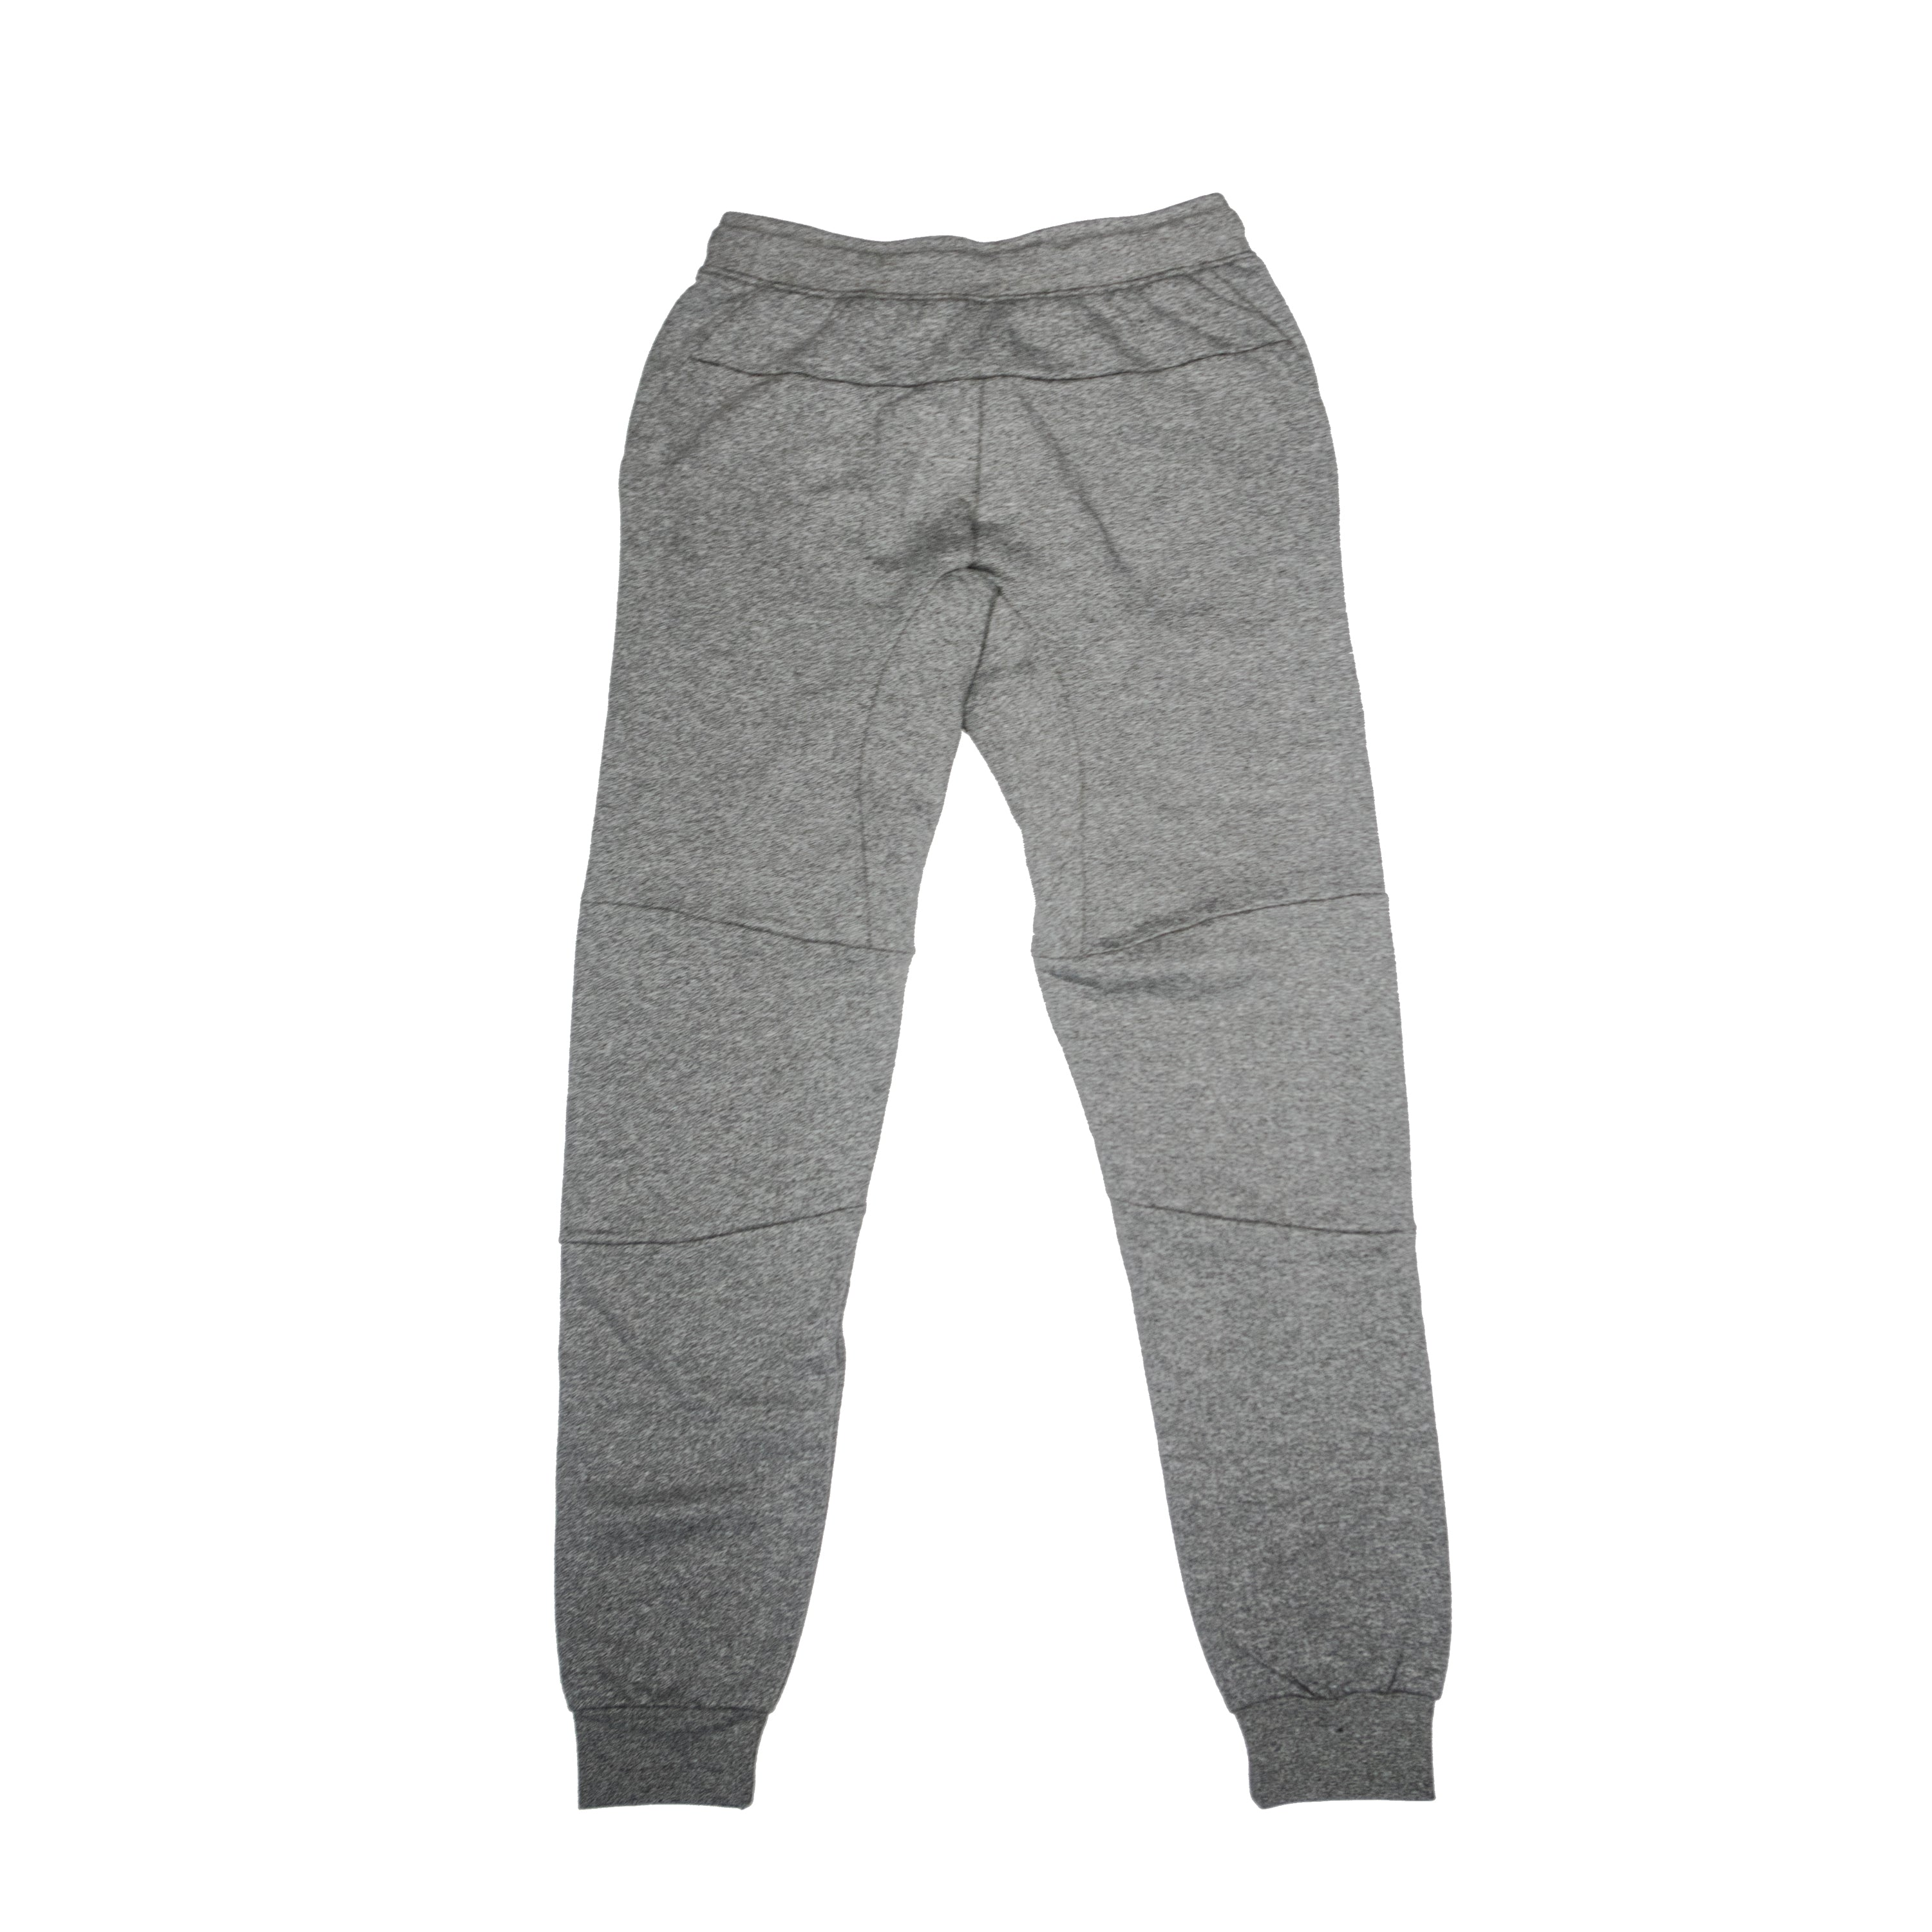 endurance joggers in heather grey